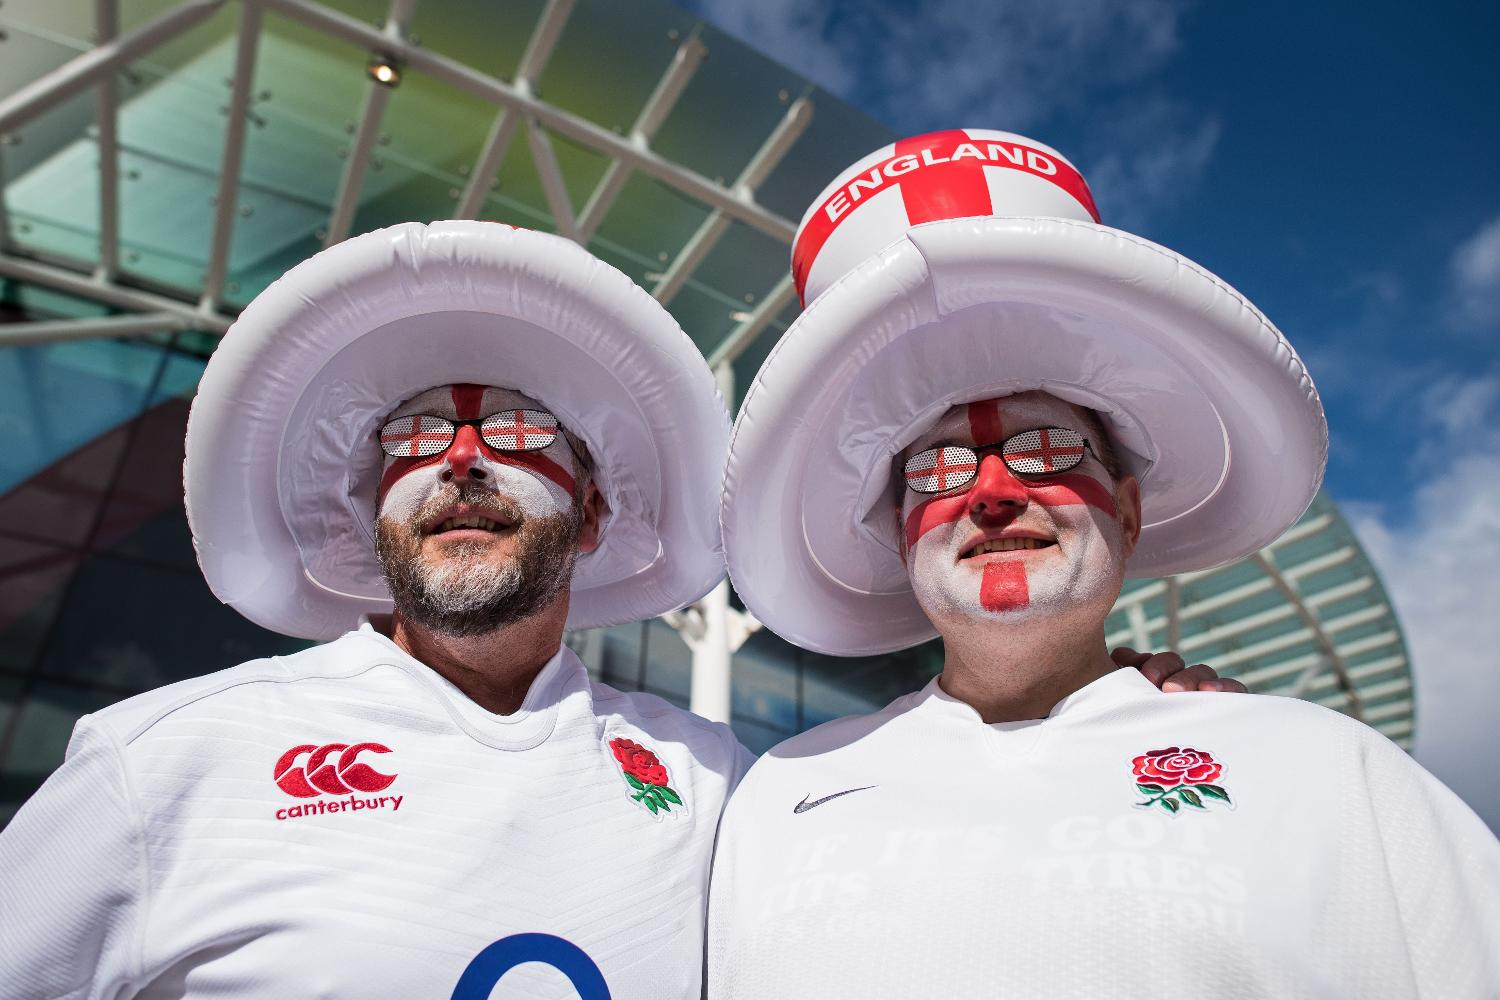 Radical views but fans far from blinkered - Rugby World Cup